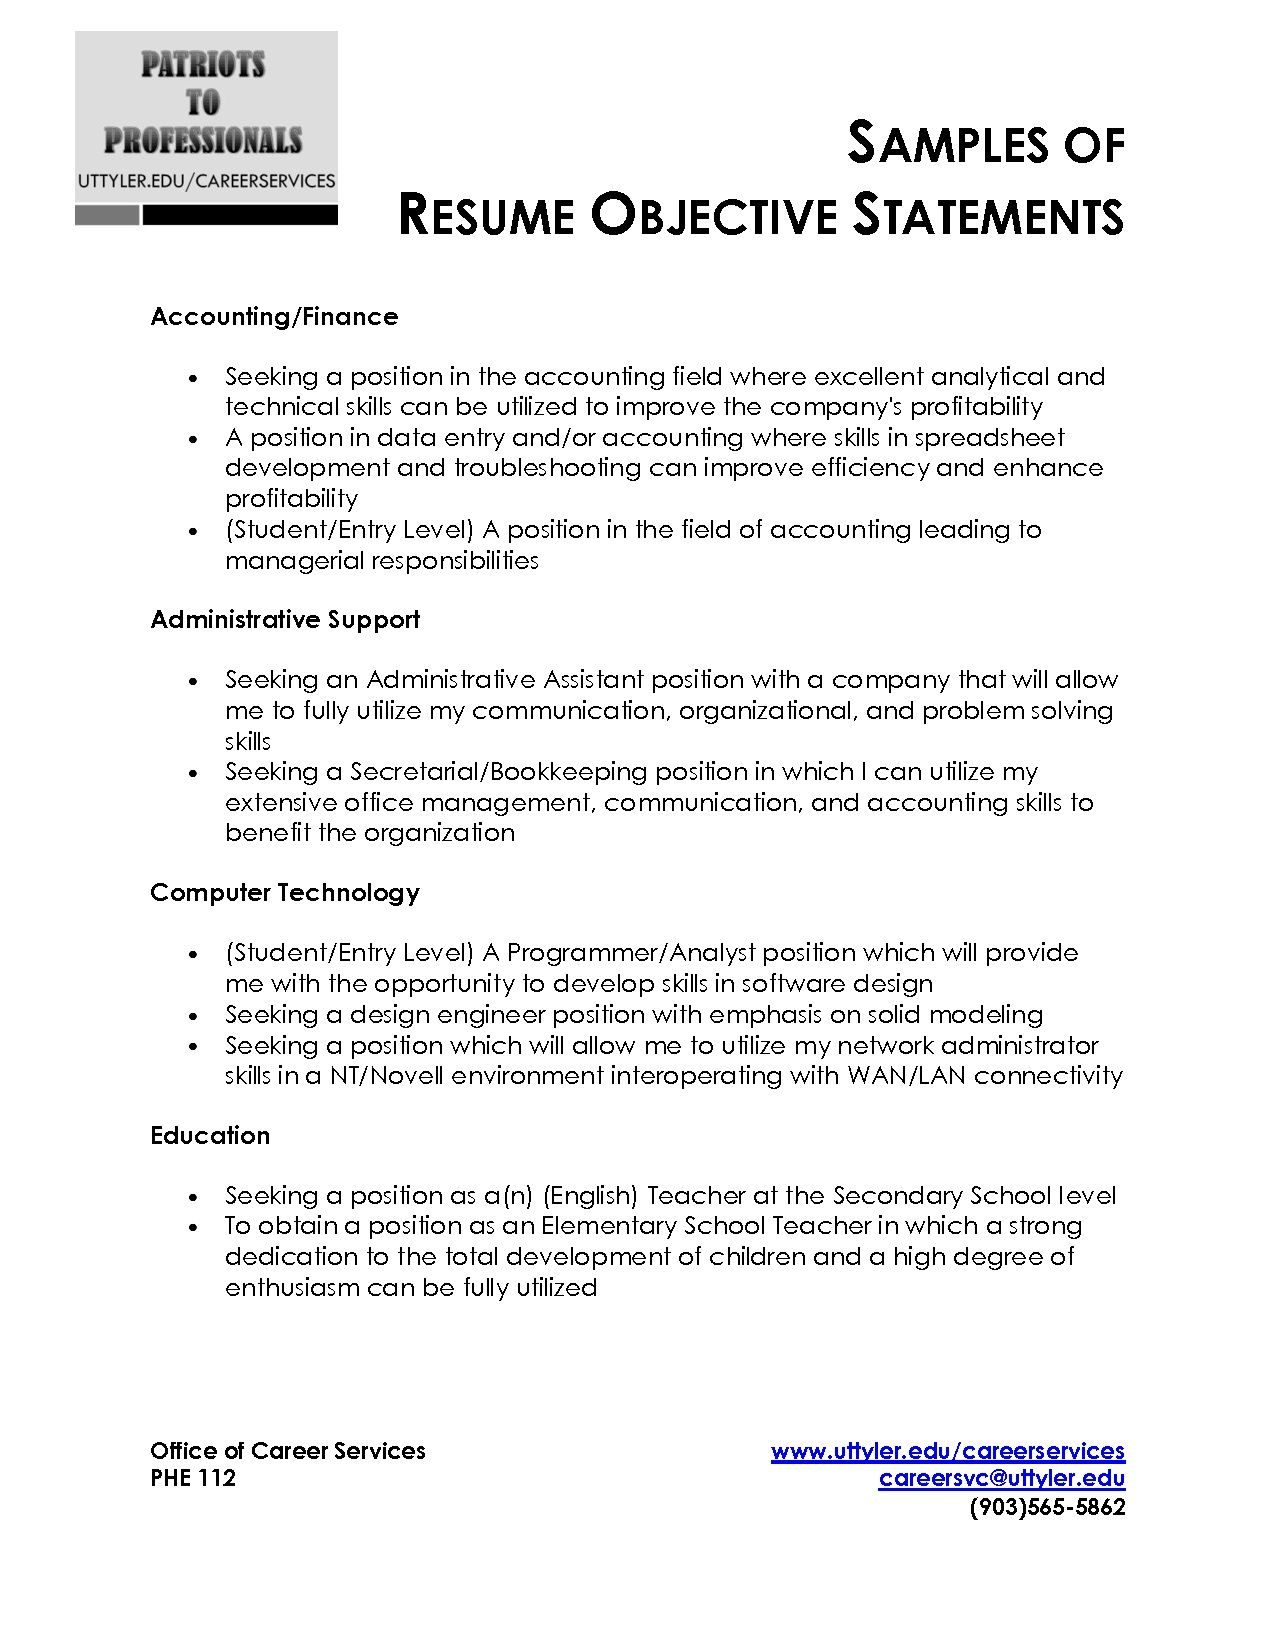 sample resume objective statement free templates examples professional technical template Resume Professional Resume Objective Statement Examples